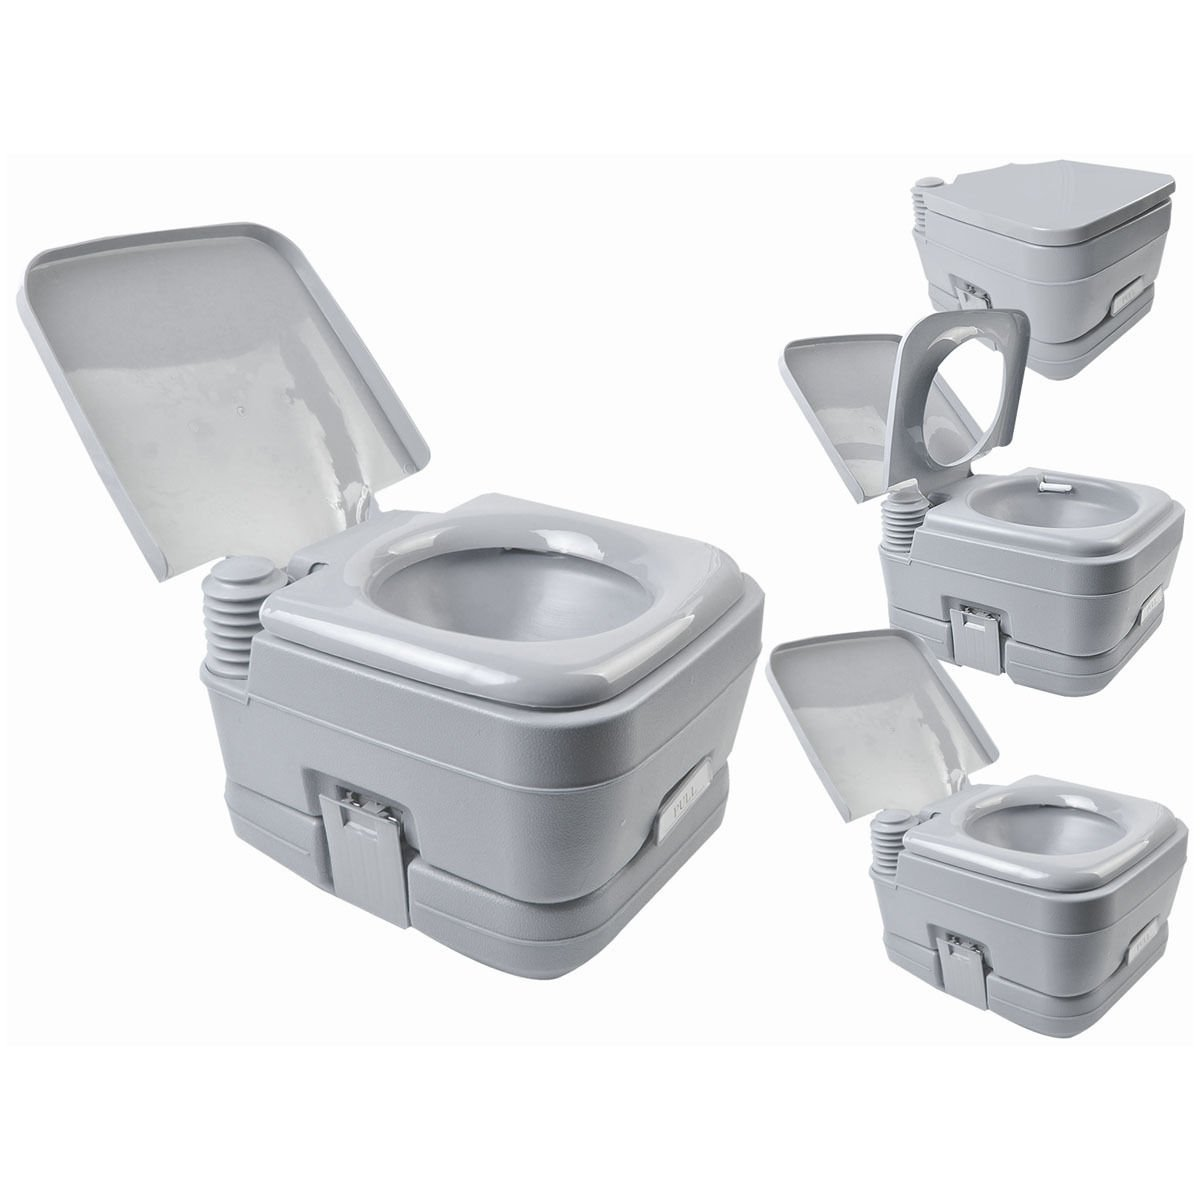 Cheap Portable Potty Camping, find Portable Potty Camping deals on ...